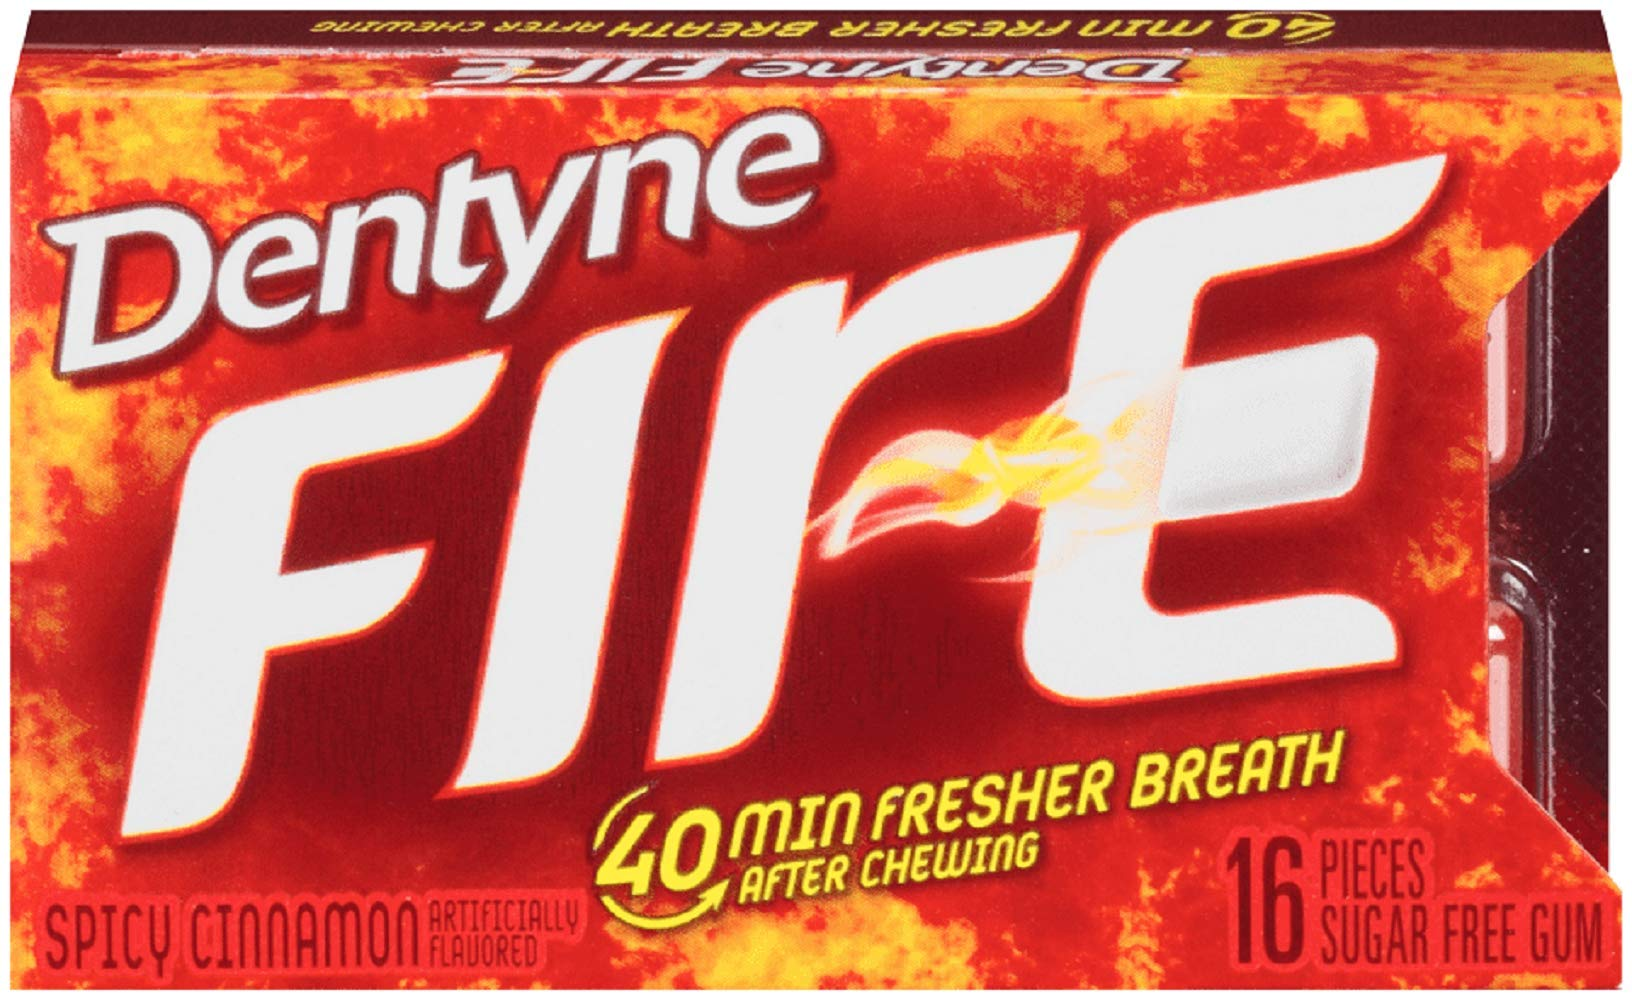 CADBURY ADAMS USA Dentyne Fire Gum, Spicy Cinnamon, 0.0500-Ounce Boxes (Pack of 24)